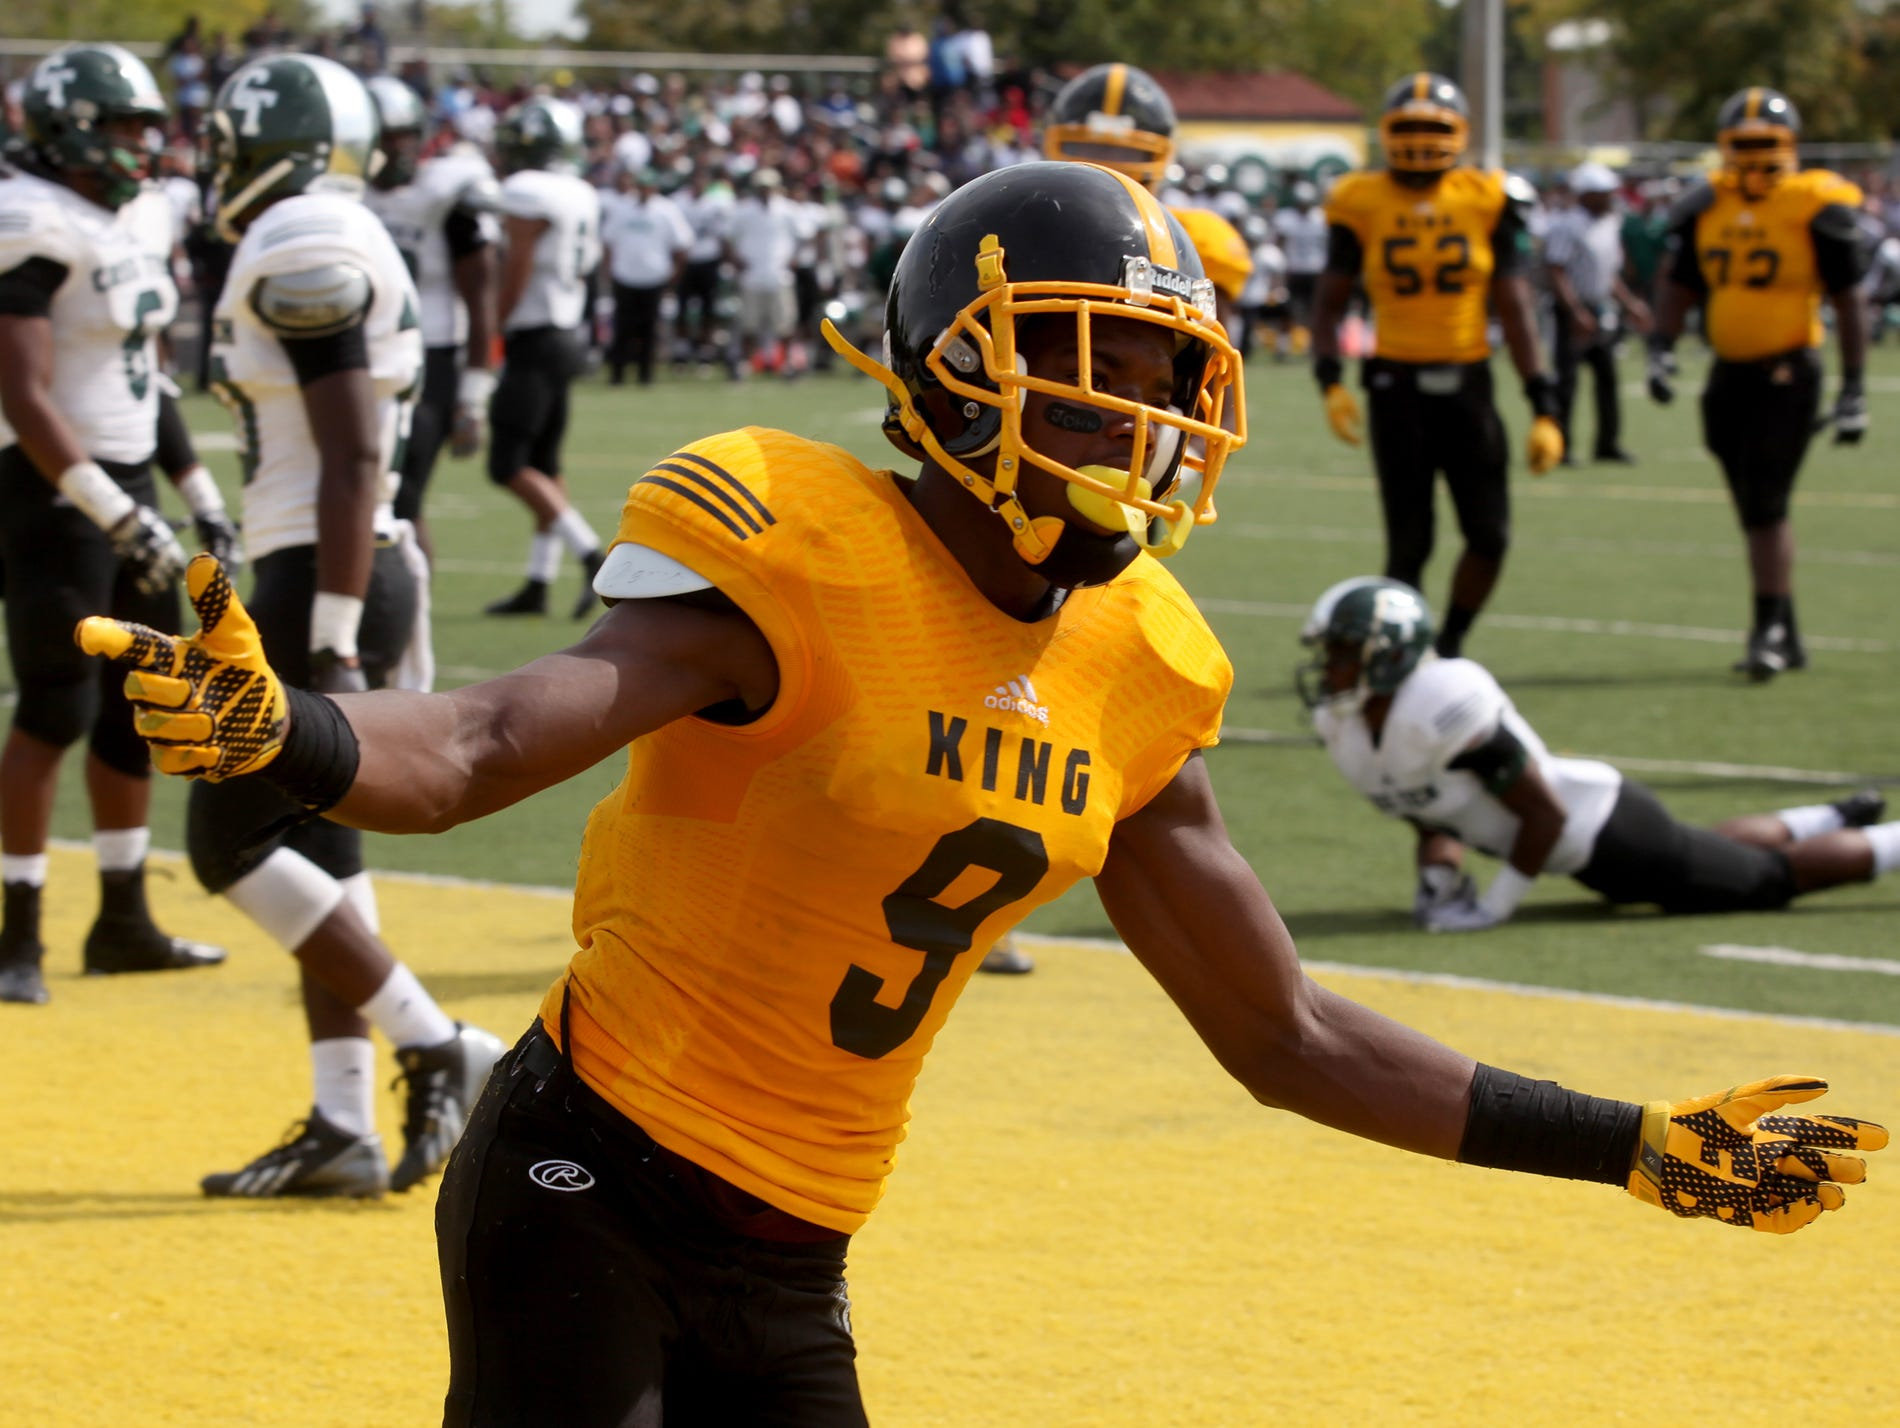 Detroit King's Donnie Corley celebrates after diving in for a touchdown in the first half during the game against Cass Tech on Sept. 26.